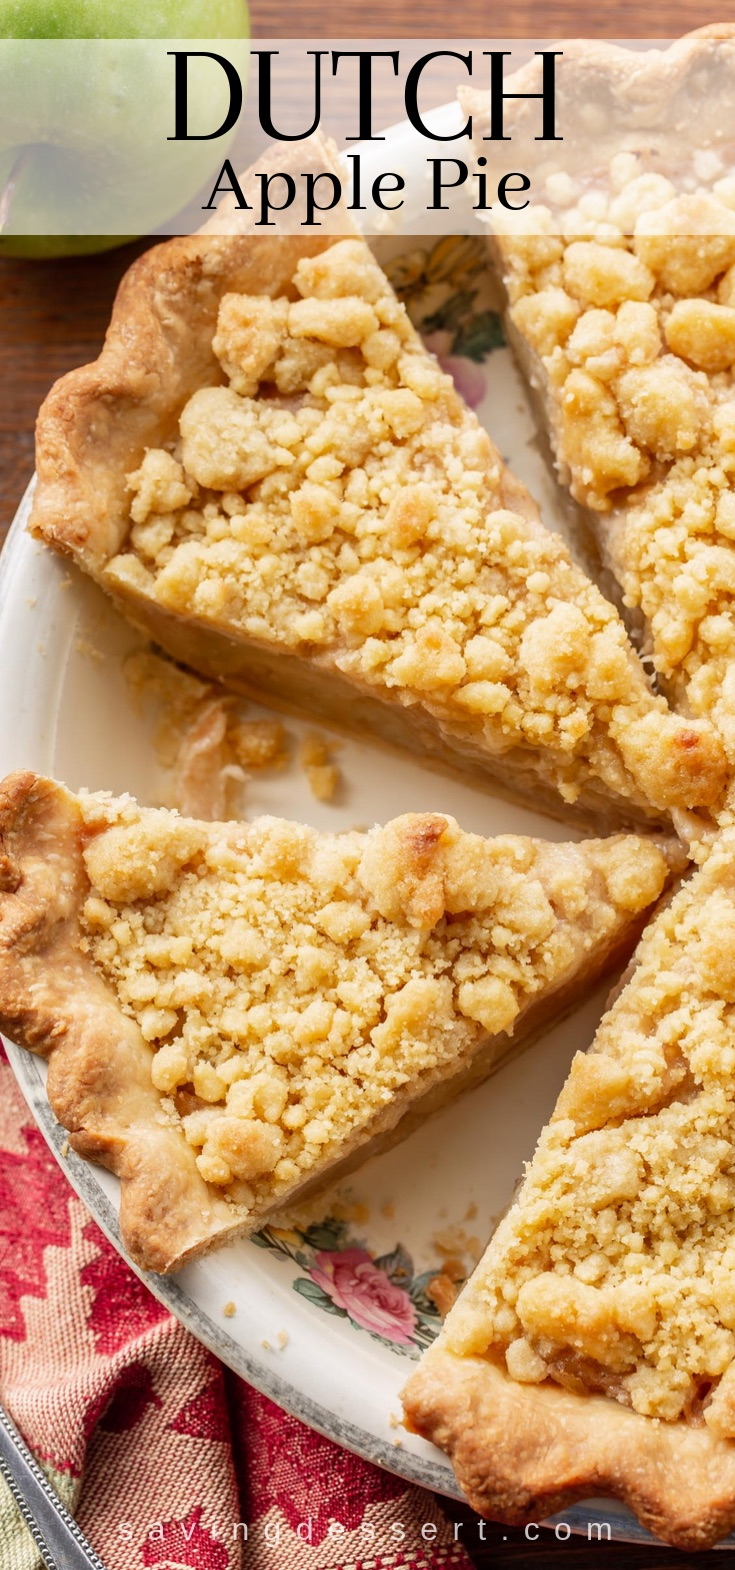 Dutch Apple Pie - Saving Room for Dessert